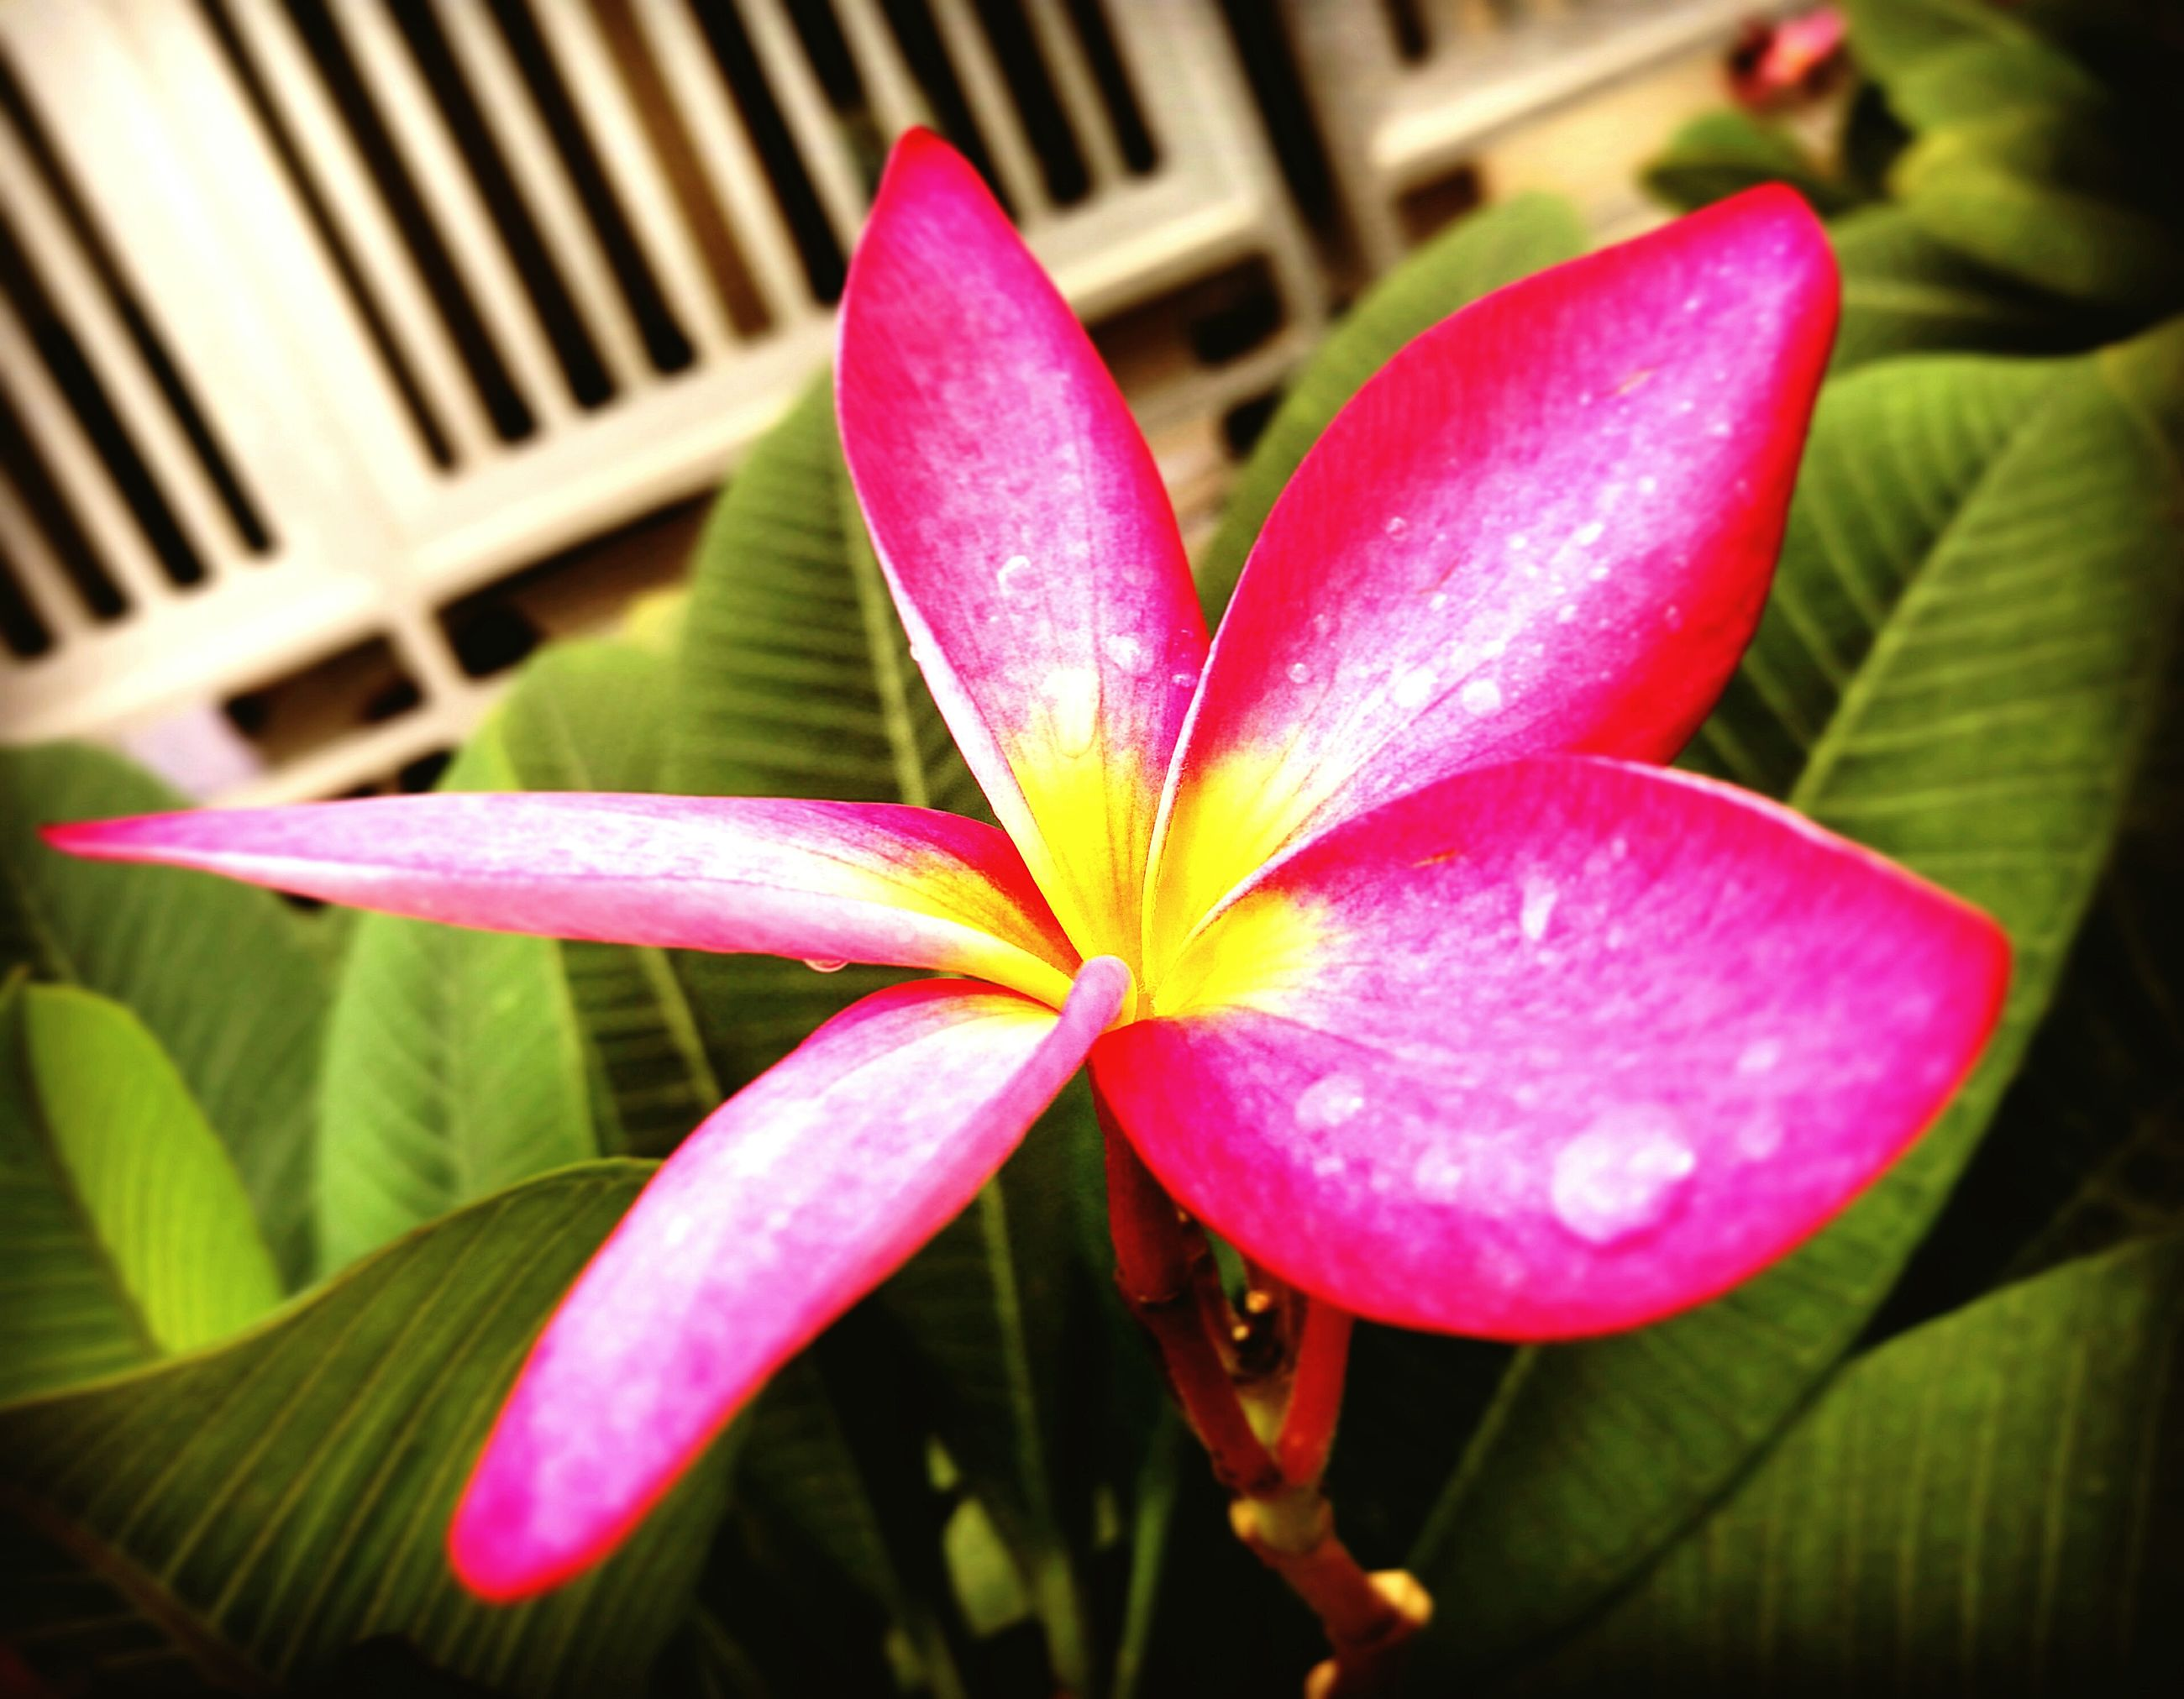 flower, growth, close-up, pink color, freshness, fragility, season, springtime, in bloom, petal, beauty in nature, plant, blossom, leaf, nature, flower head, botany, focus on foreground, vibrant color, selective focus, single flower, softness, pink, focus, soft focus, purity, frangipani, green, day, outdoors